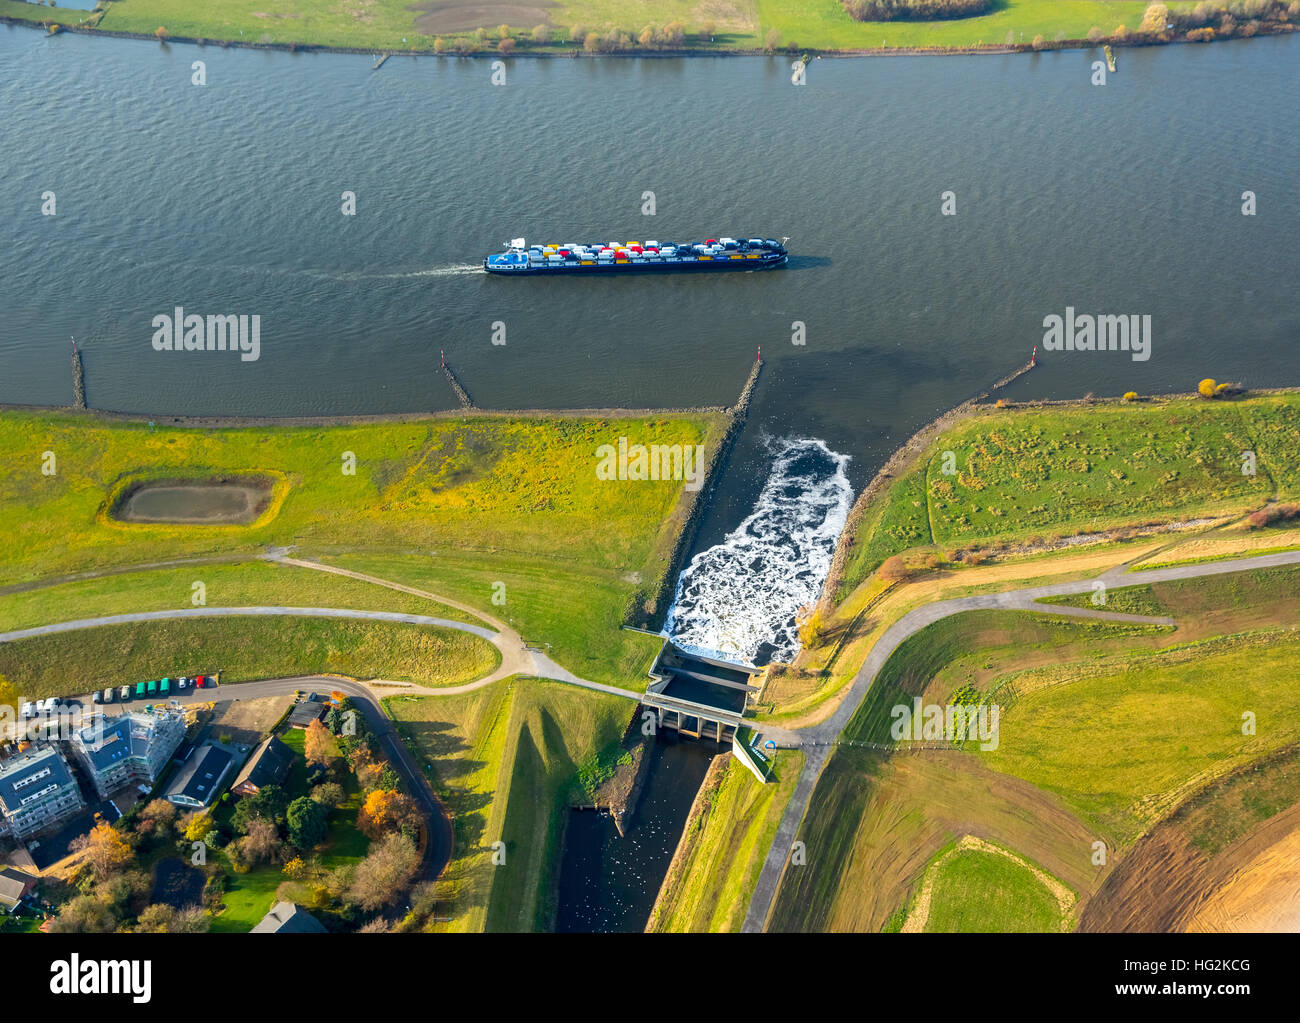 Aerial view, Emscher estuary, Rhine meadows, Dinslaken, Rhine, reconstruction of Emscher mouth, Dinslaken, Ruhr Stock Photo